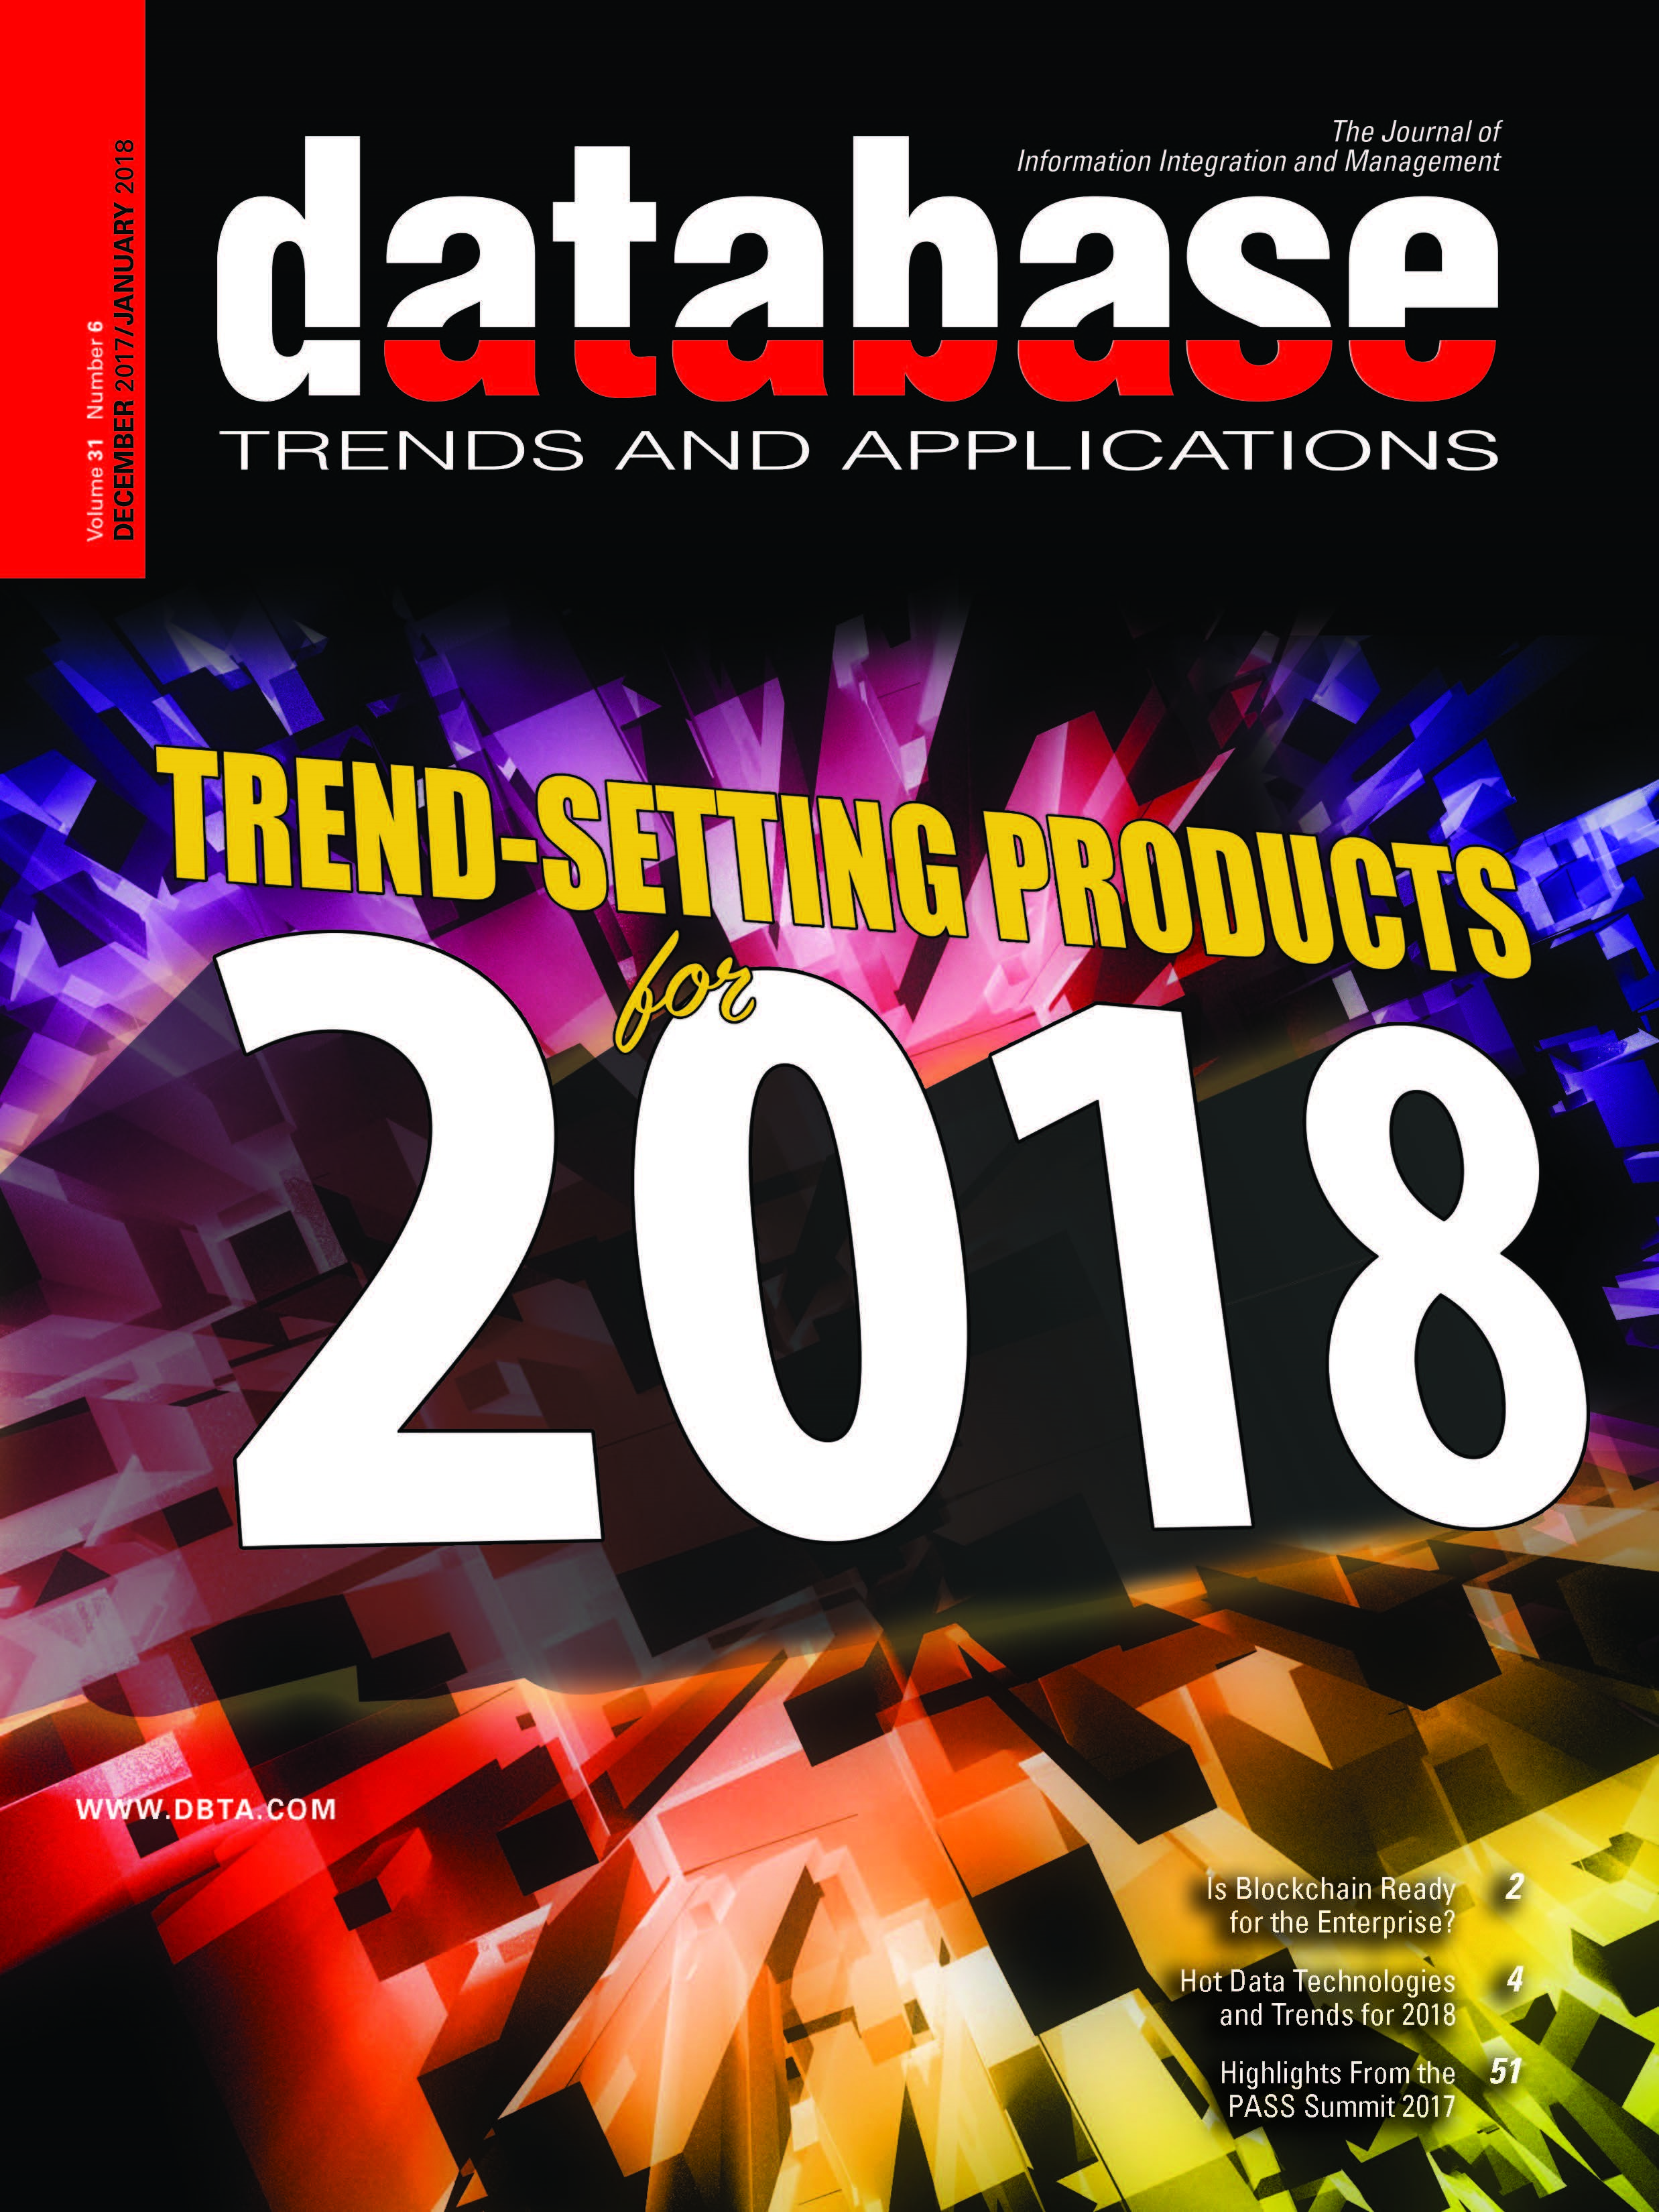 Database Trends and Applications Magazine: Dec 2017/Jan 2018 Issue